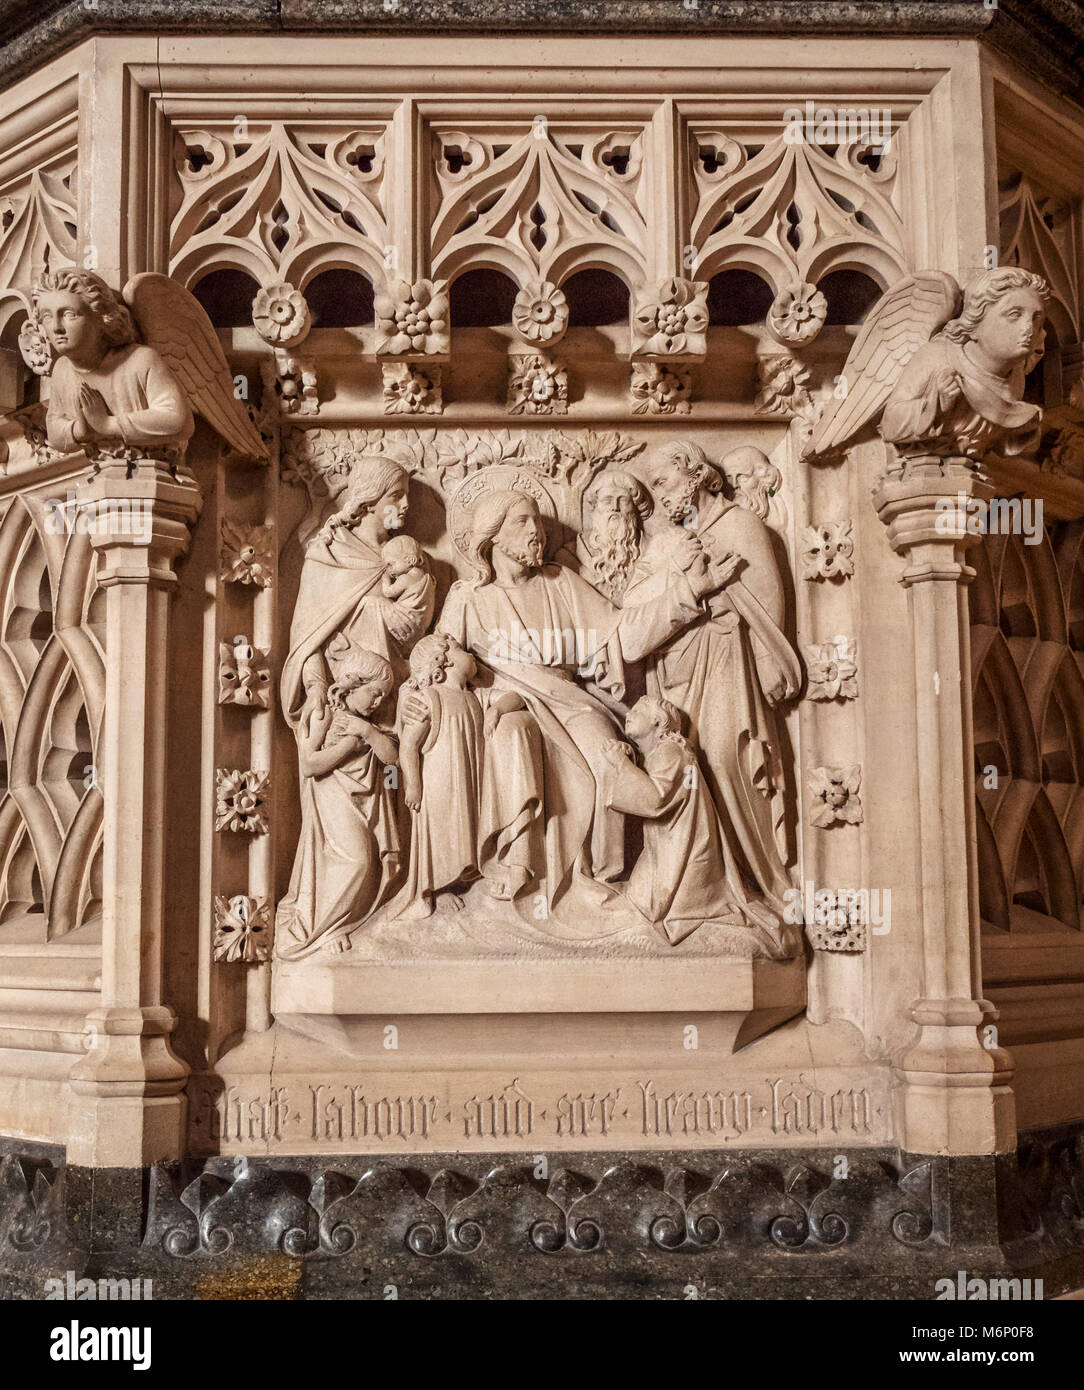 Finely carved stone pulpit of Tewkesbury Abbey showing scenes from the life of Christ here Jesus blessing adoring - Stock Image